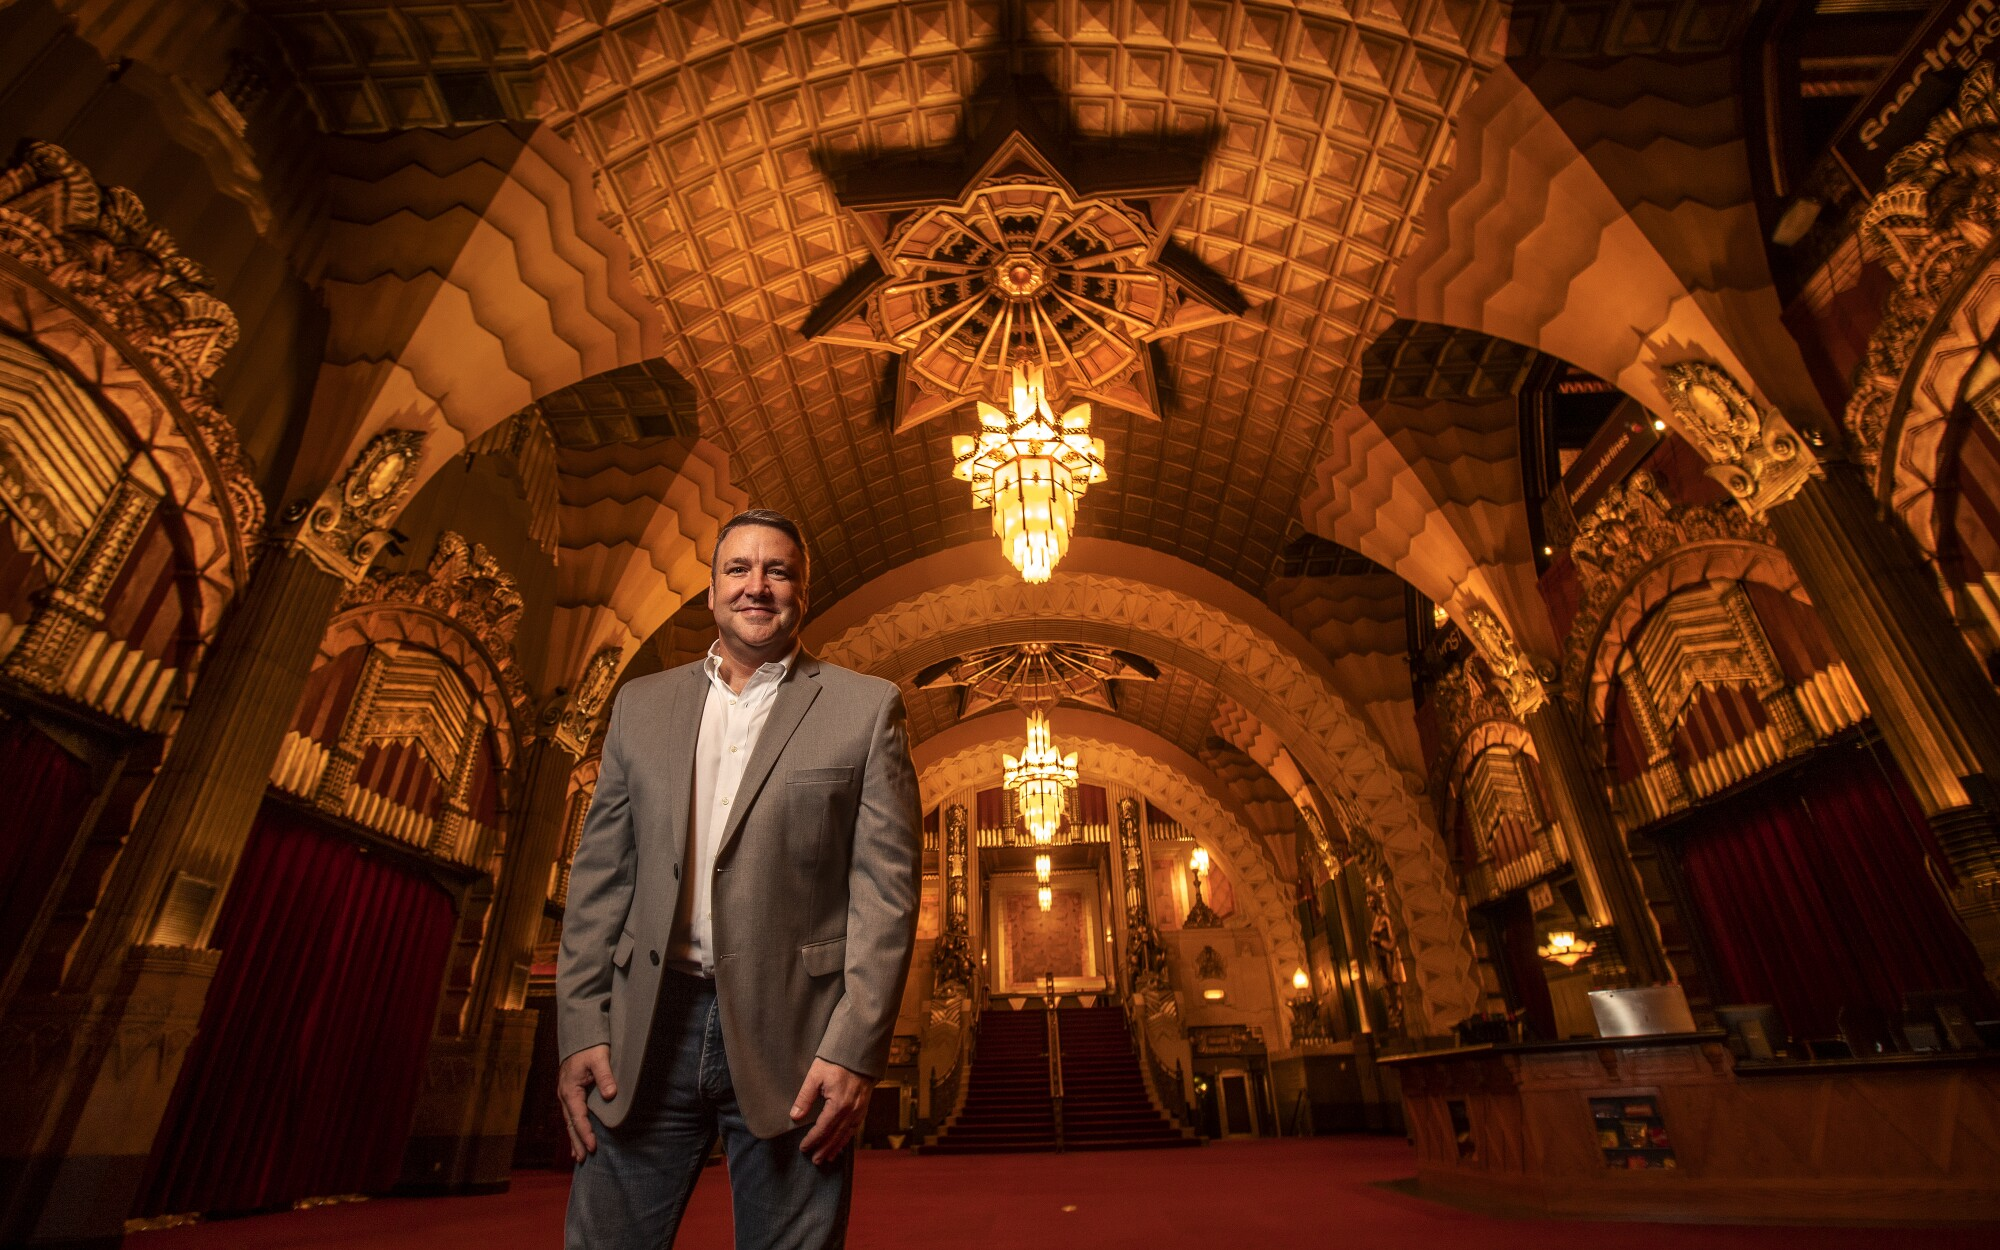 Jeff Loeb inside the grand lobby of the Pantages Theatre